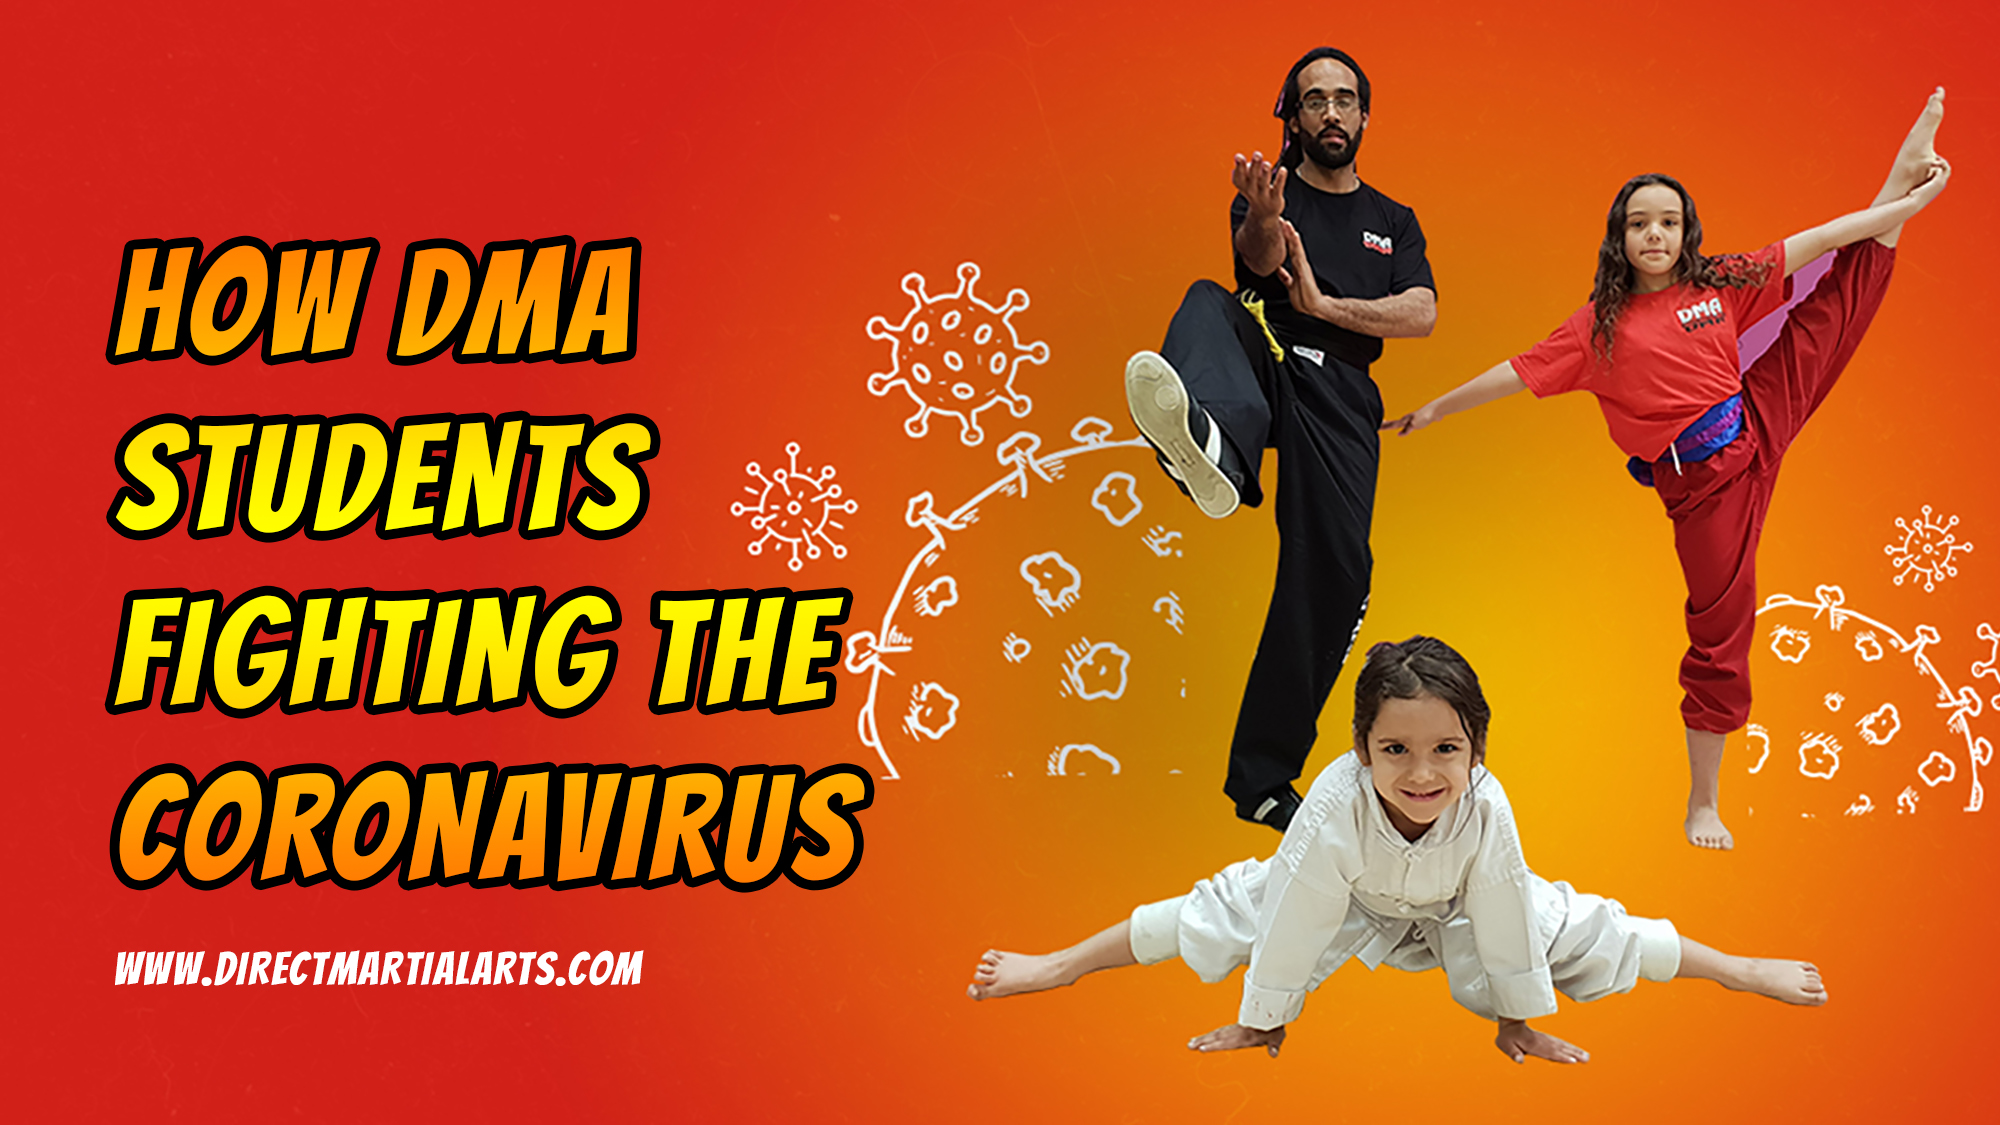 How DMA Students Fighting The Coronavirus